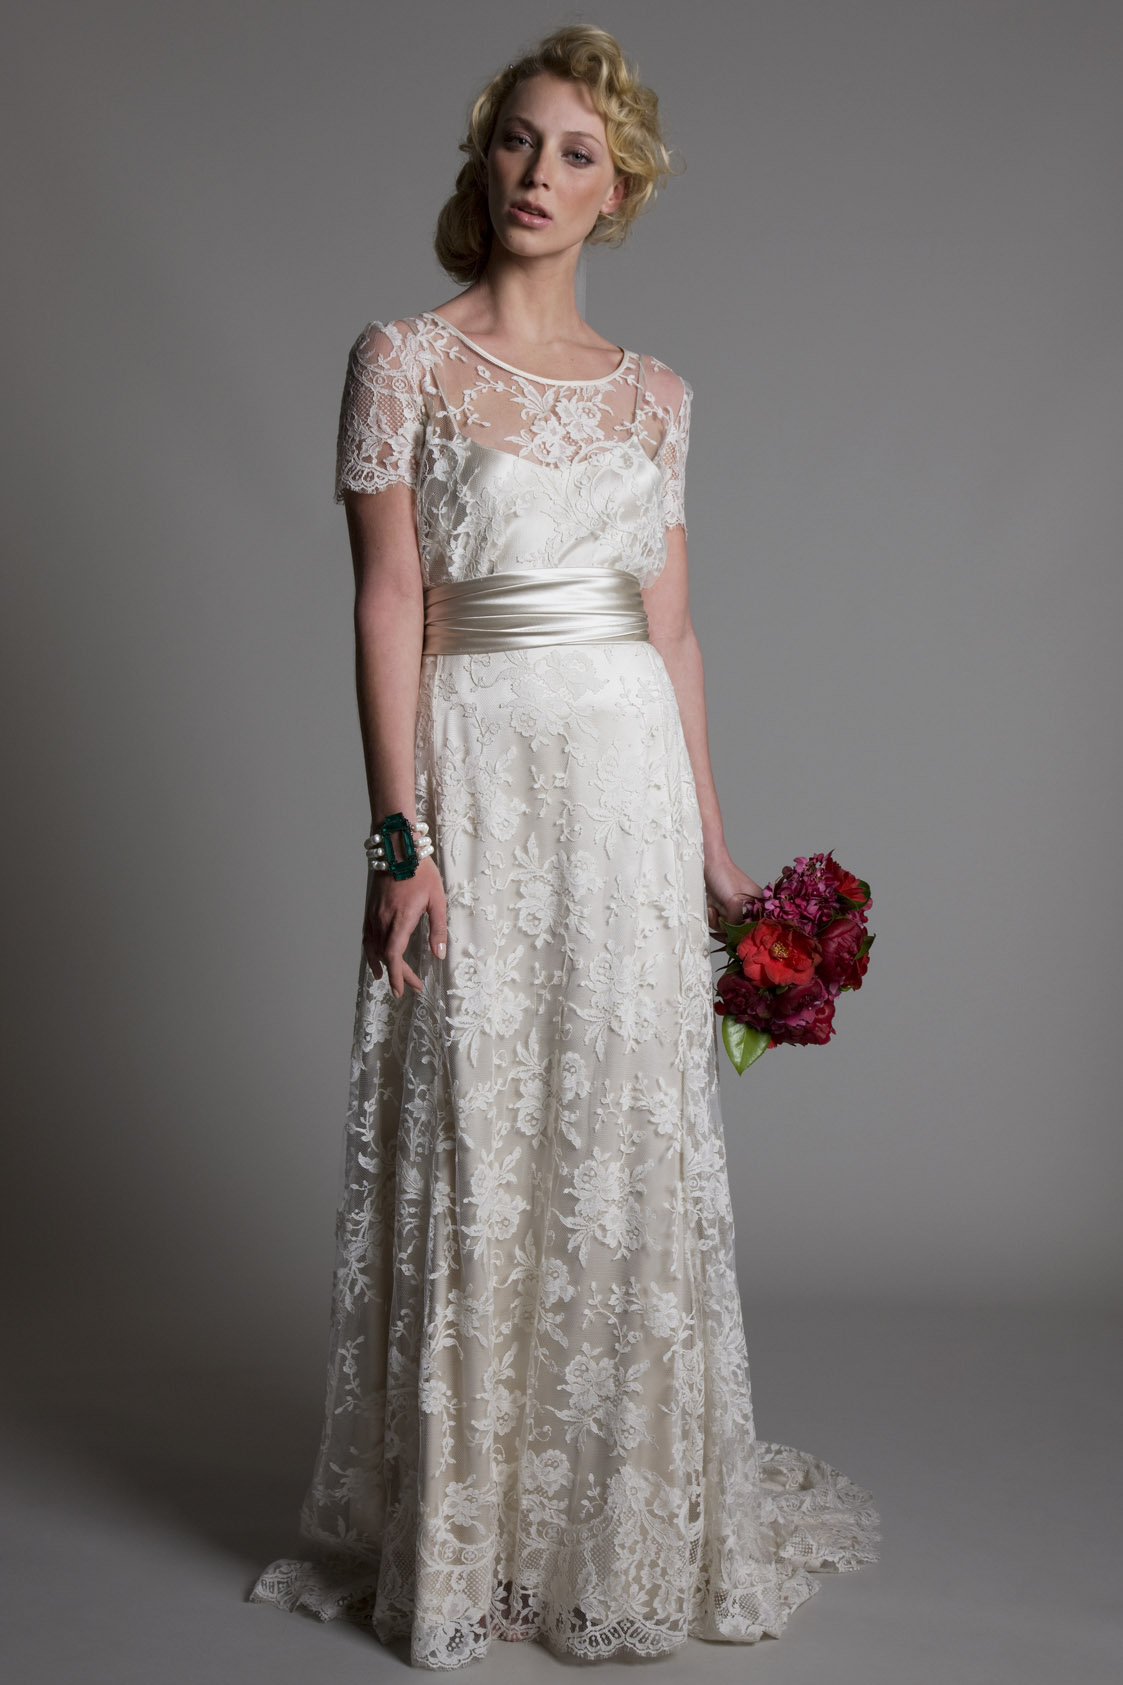 Annabelle french lace tee paired with the French lace Bella A line skirt and wrapped satin belt bridal wedding dress by Halfpenny London